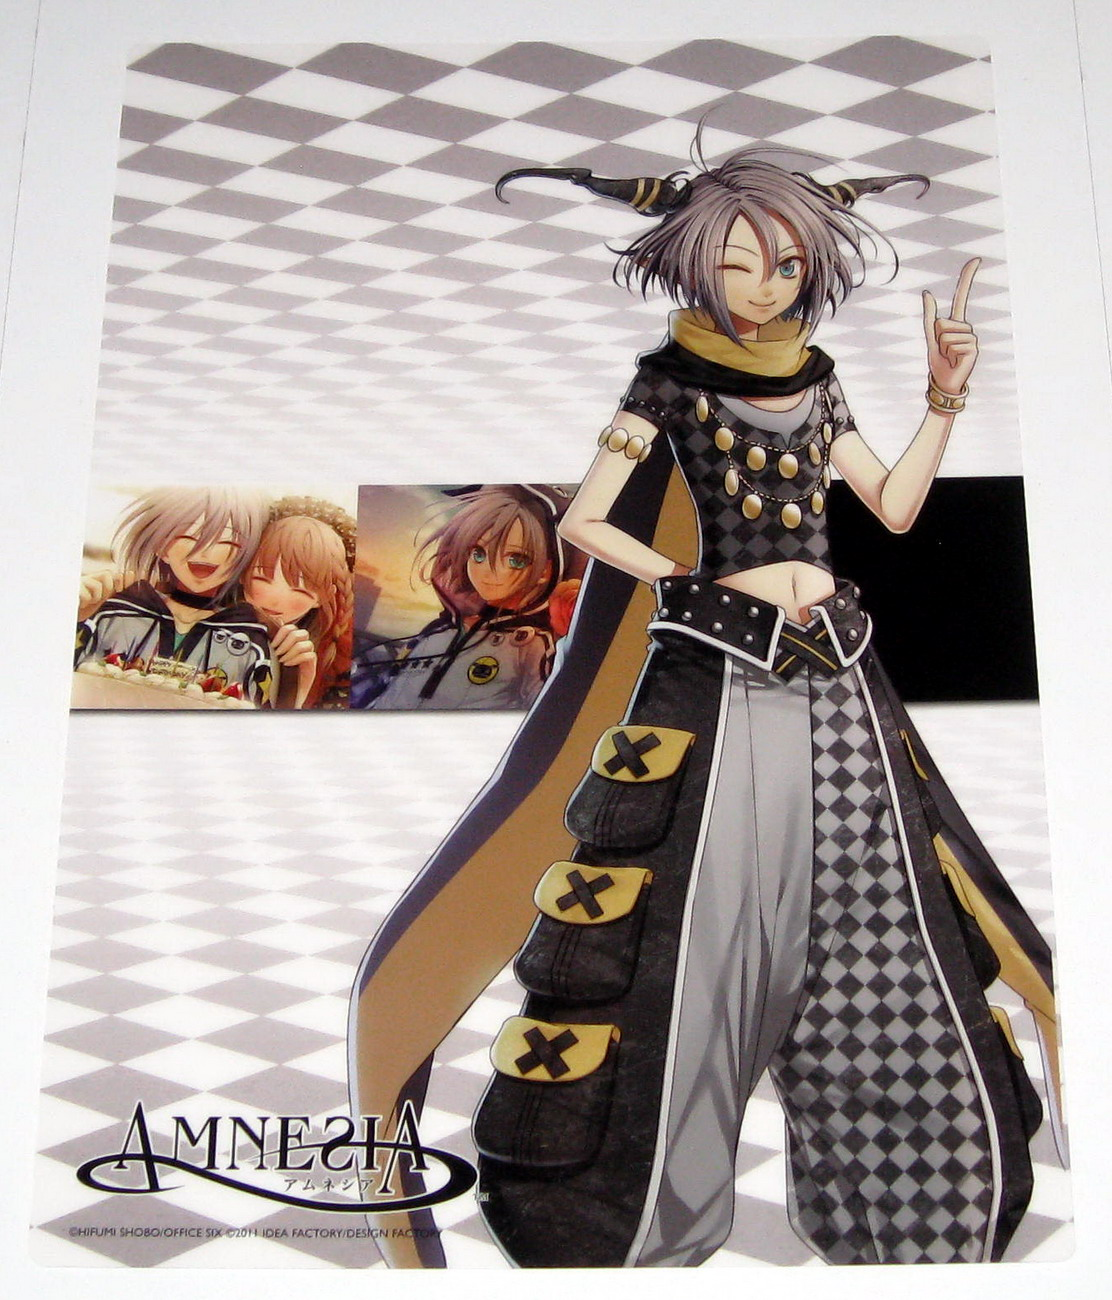 Amnesia Still Collection Premium v7 - 06